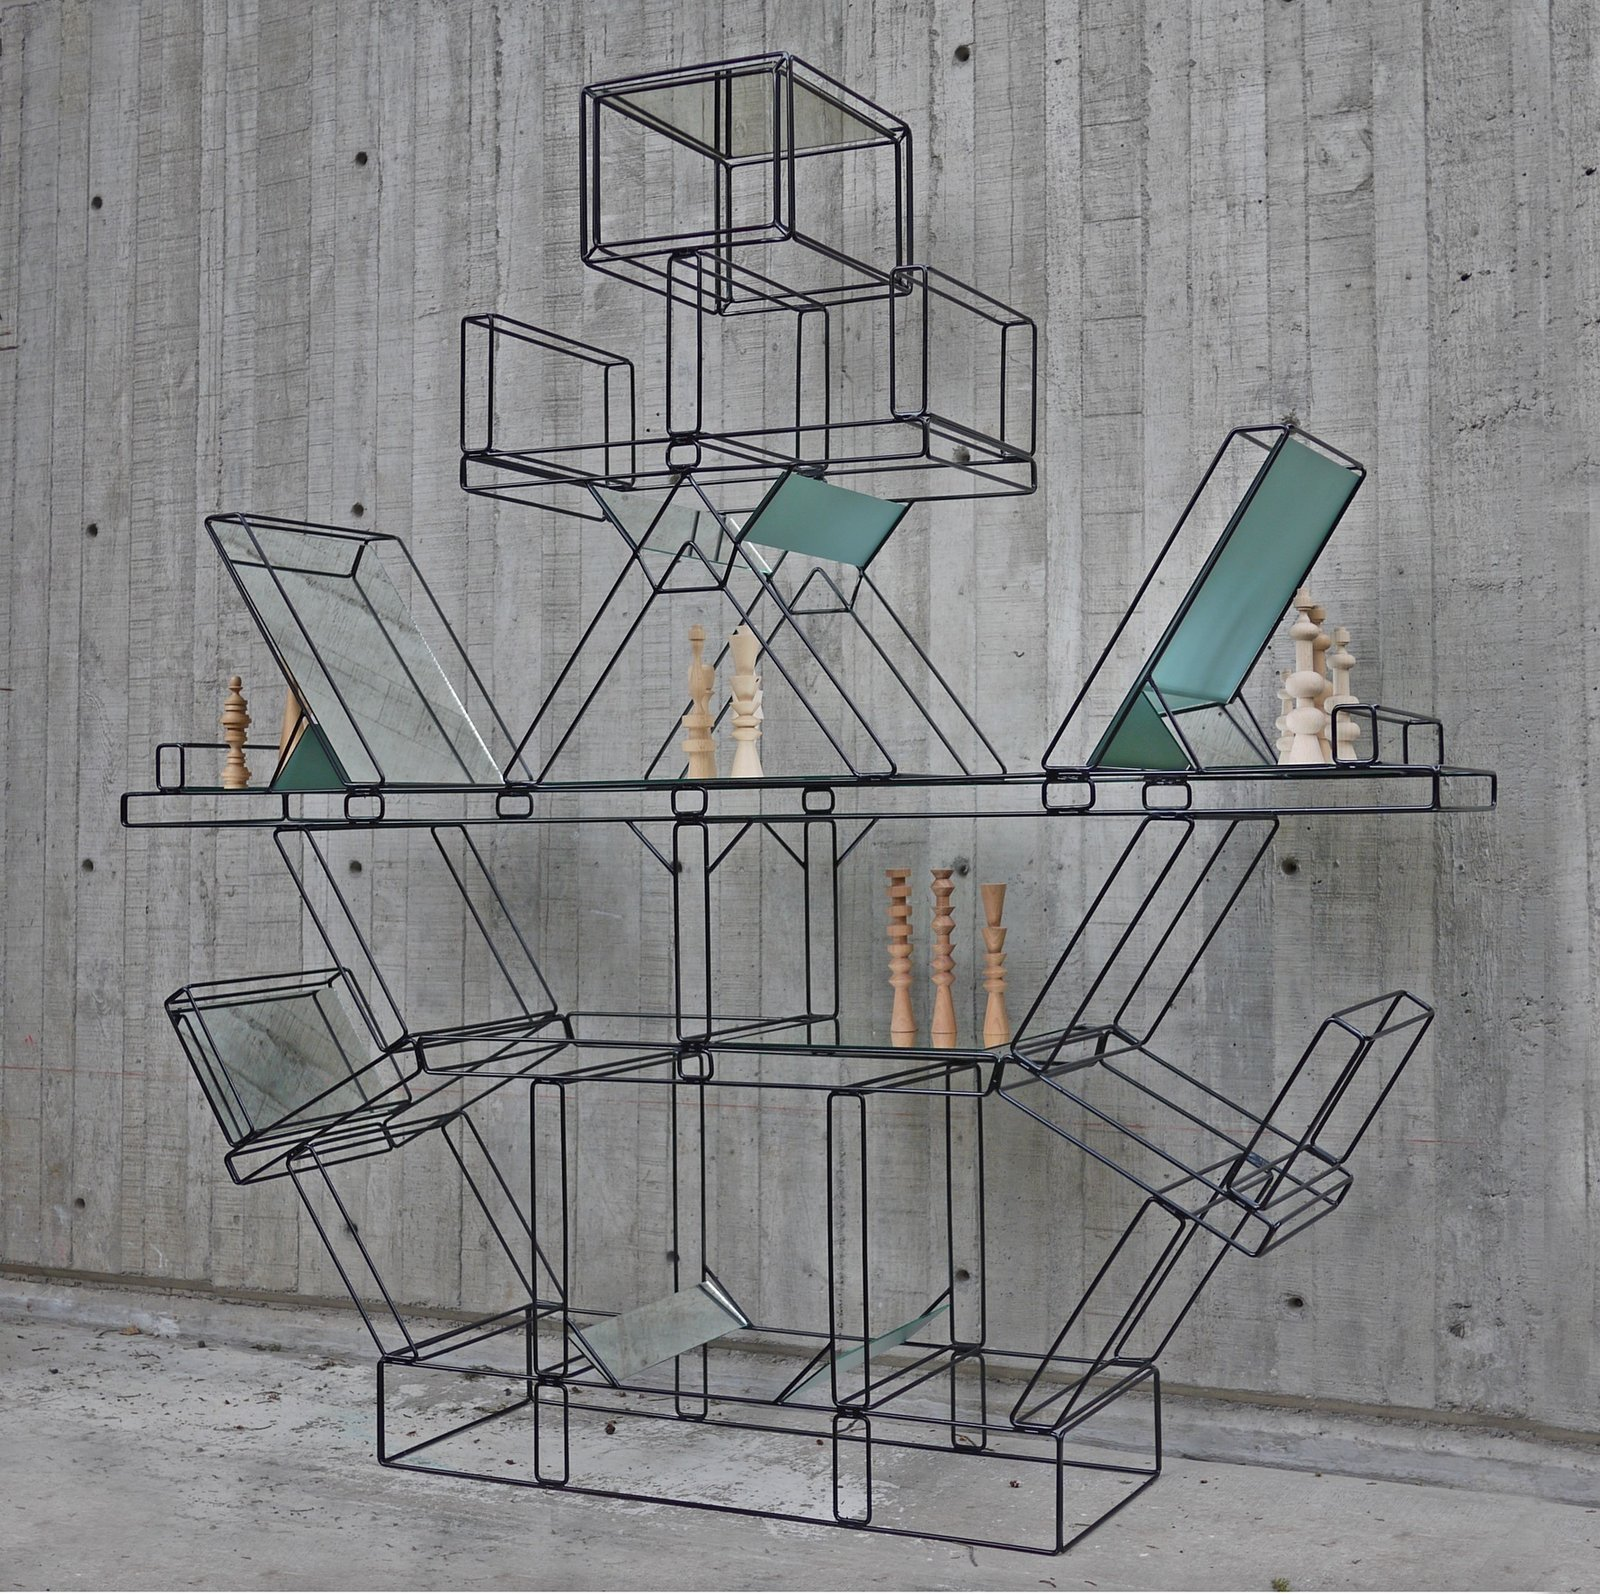 """Totem after Ettore Sottsass by Edgar Orlaineta (2013)  An example of Latin American craft that """"[presents] a response and challenge to international icons,"""" according to curator Lowery Stokes Sims, this wire-framed shelving system by the Mexican artist is a playful take on Ettore Sottsass's iconic Carlton bookcase.  Photo 5 of 12 in The New Language of Latin American Design"""